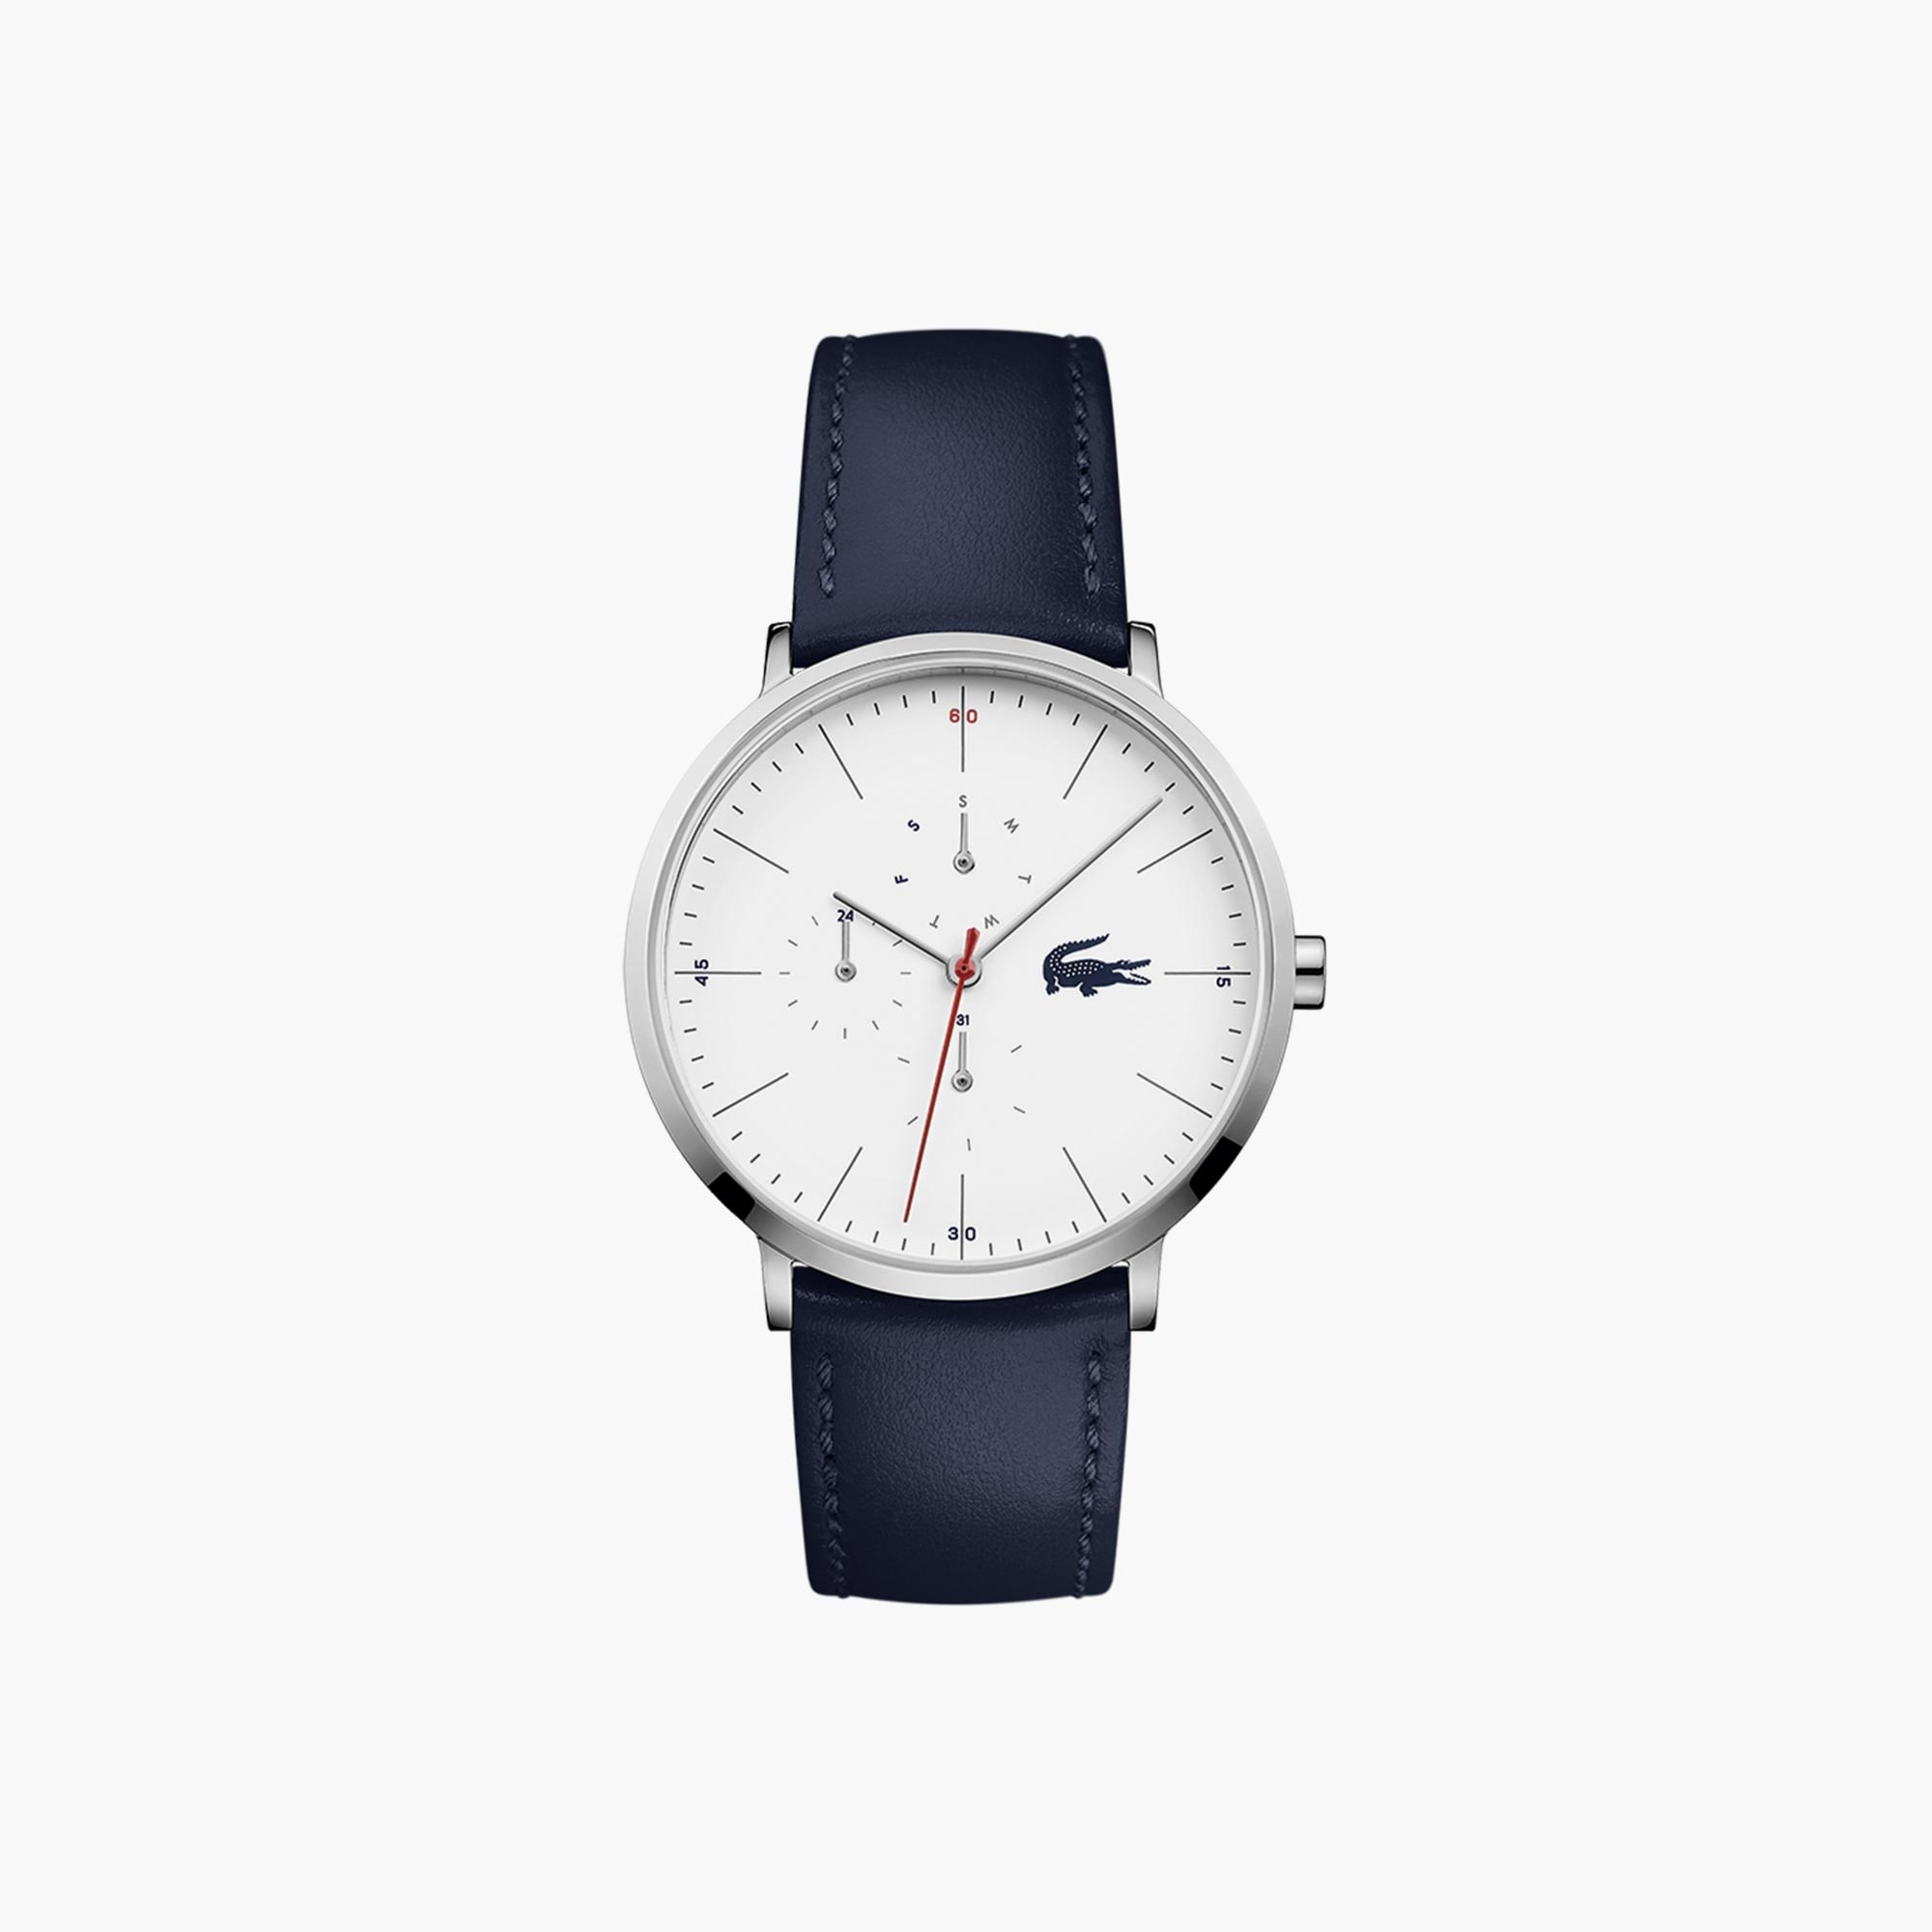 Men's Moon Multifunctions Ultra Slim Watch with Blue Leather Strap